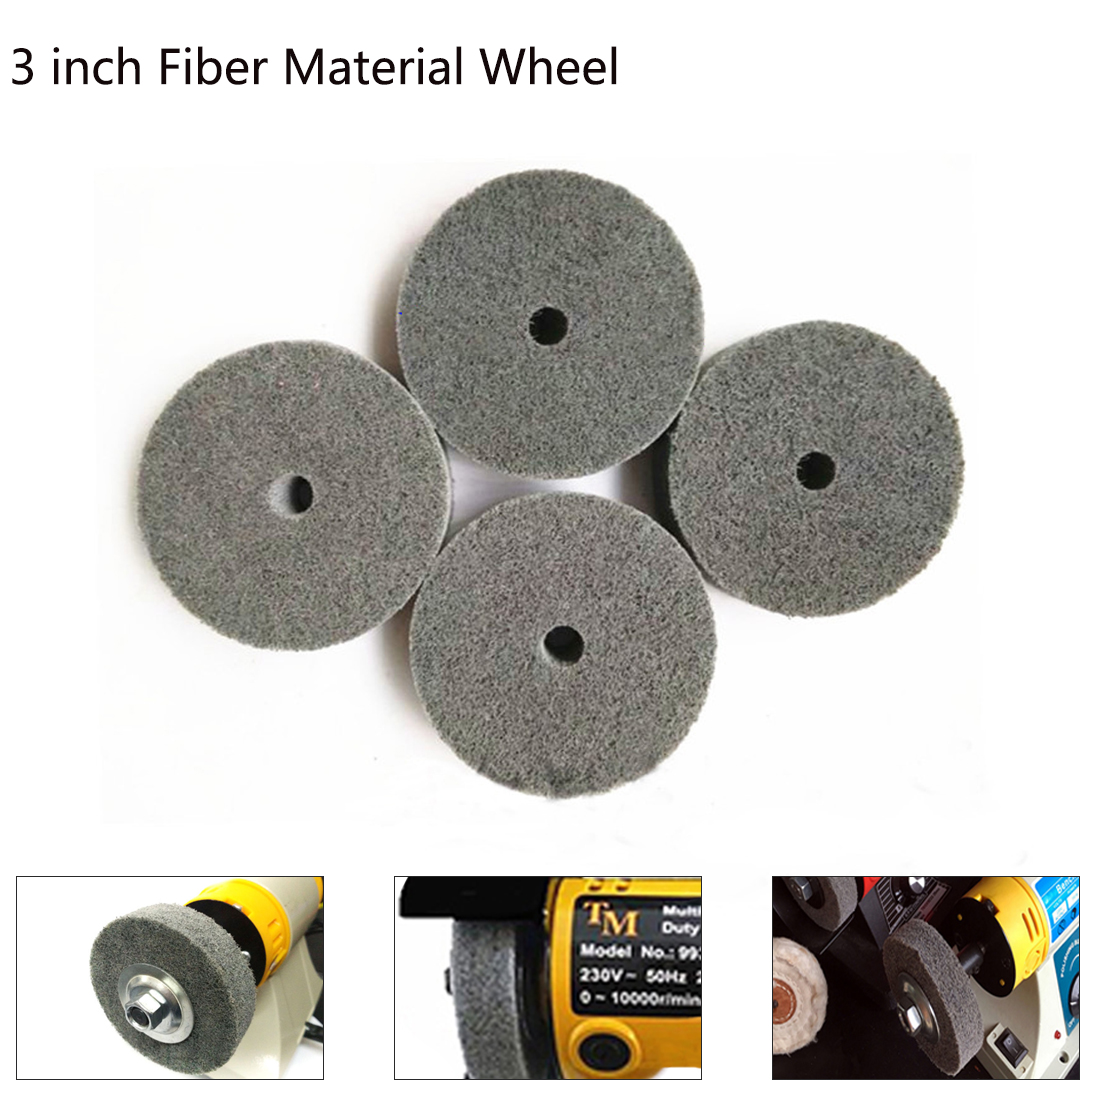 Efficient And Durable Metal Cutting Woodworking 3 Inch Nylon Wheel Fiber Wheel Felt Wheel Polishing Woodworking Tools Necessary